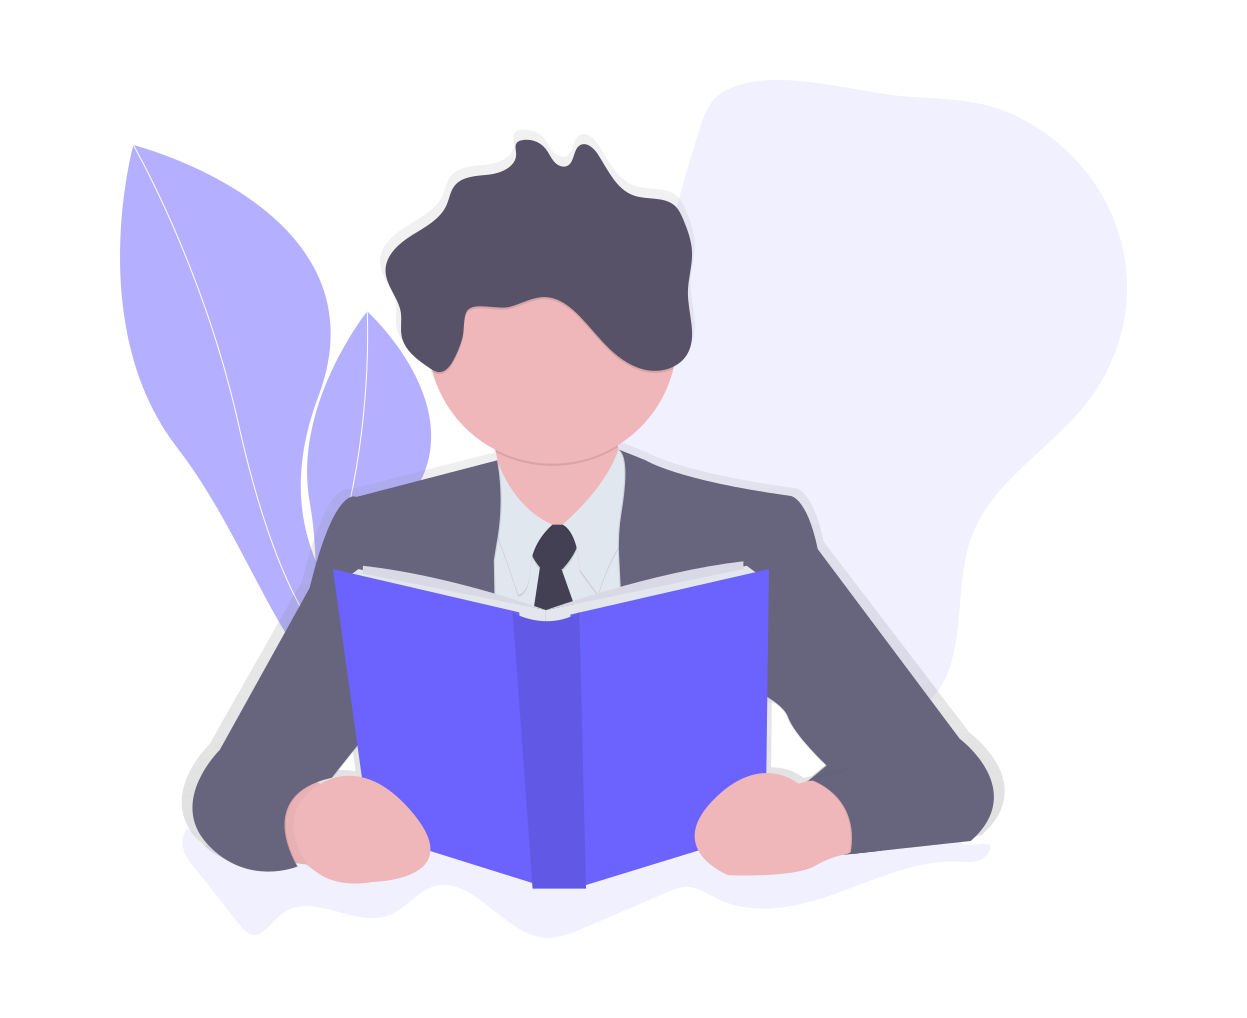 undraw_reading_list_4boi.png